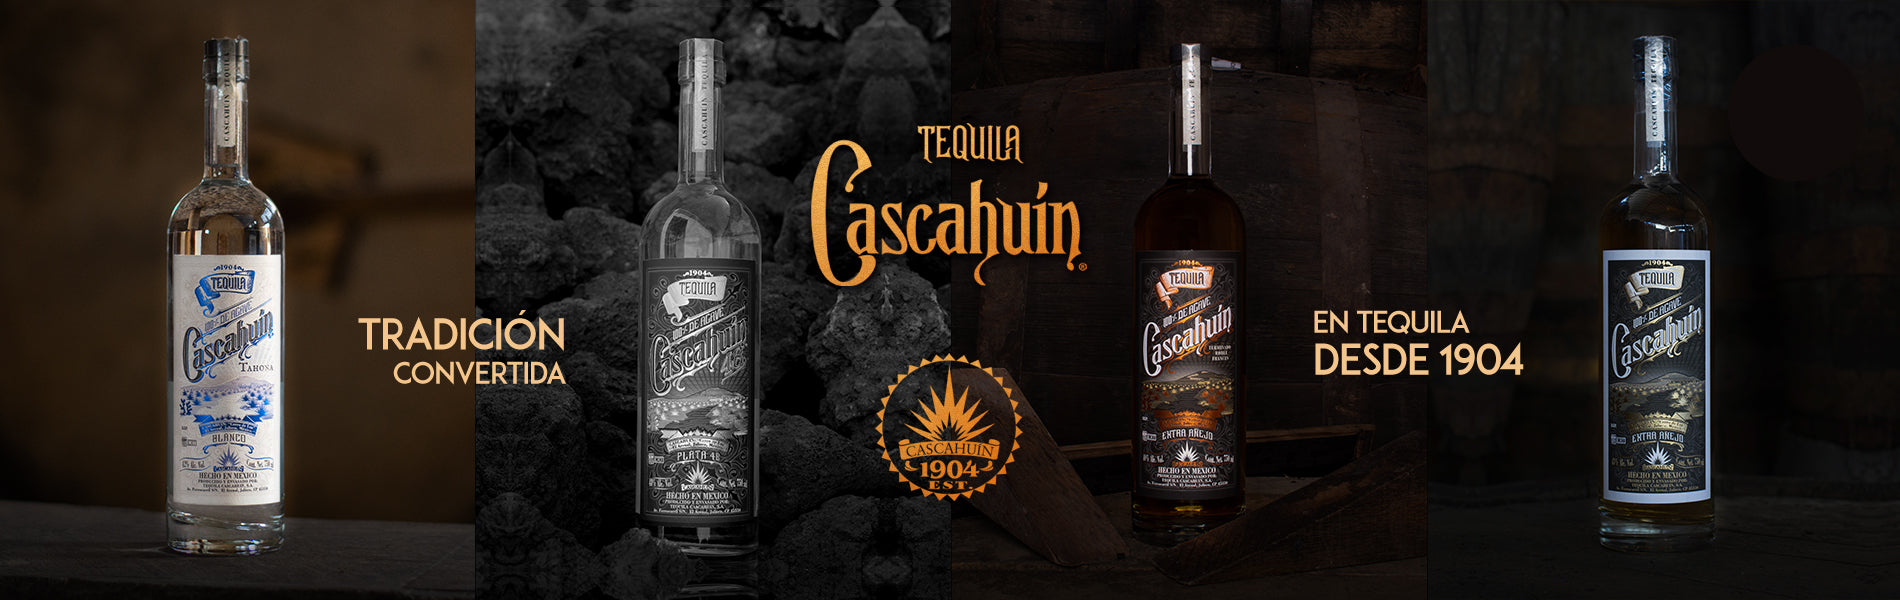 Tequila cascachuin